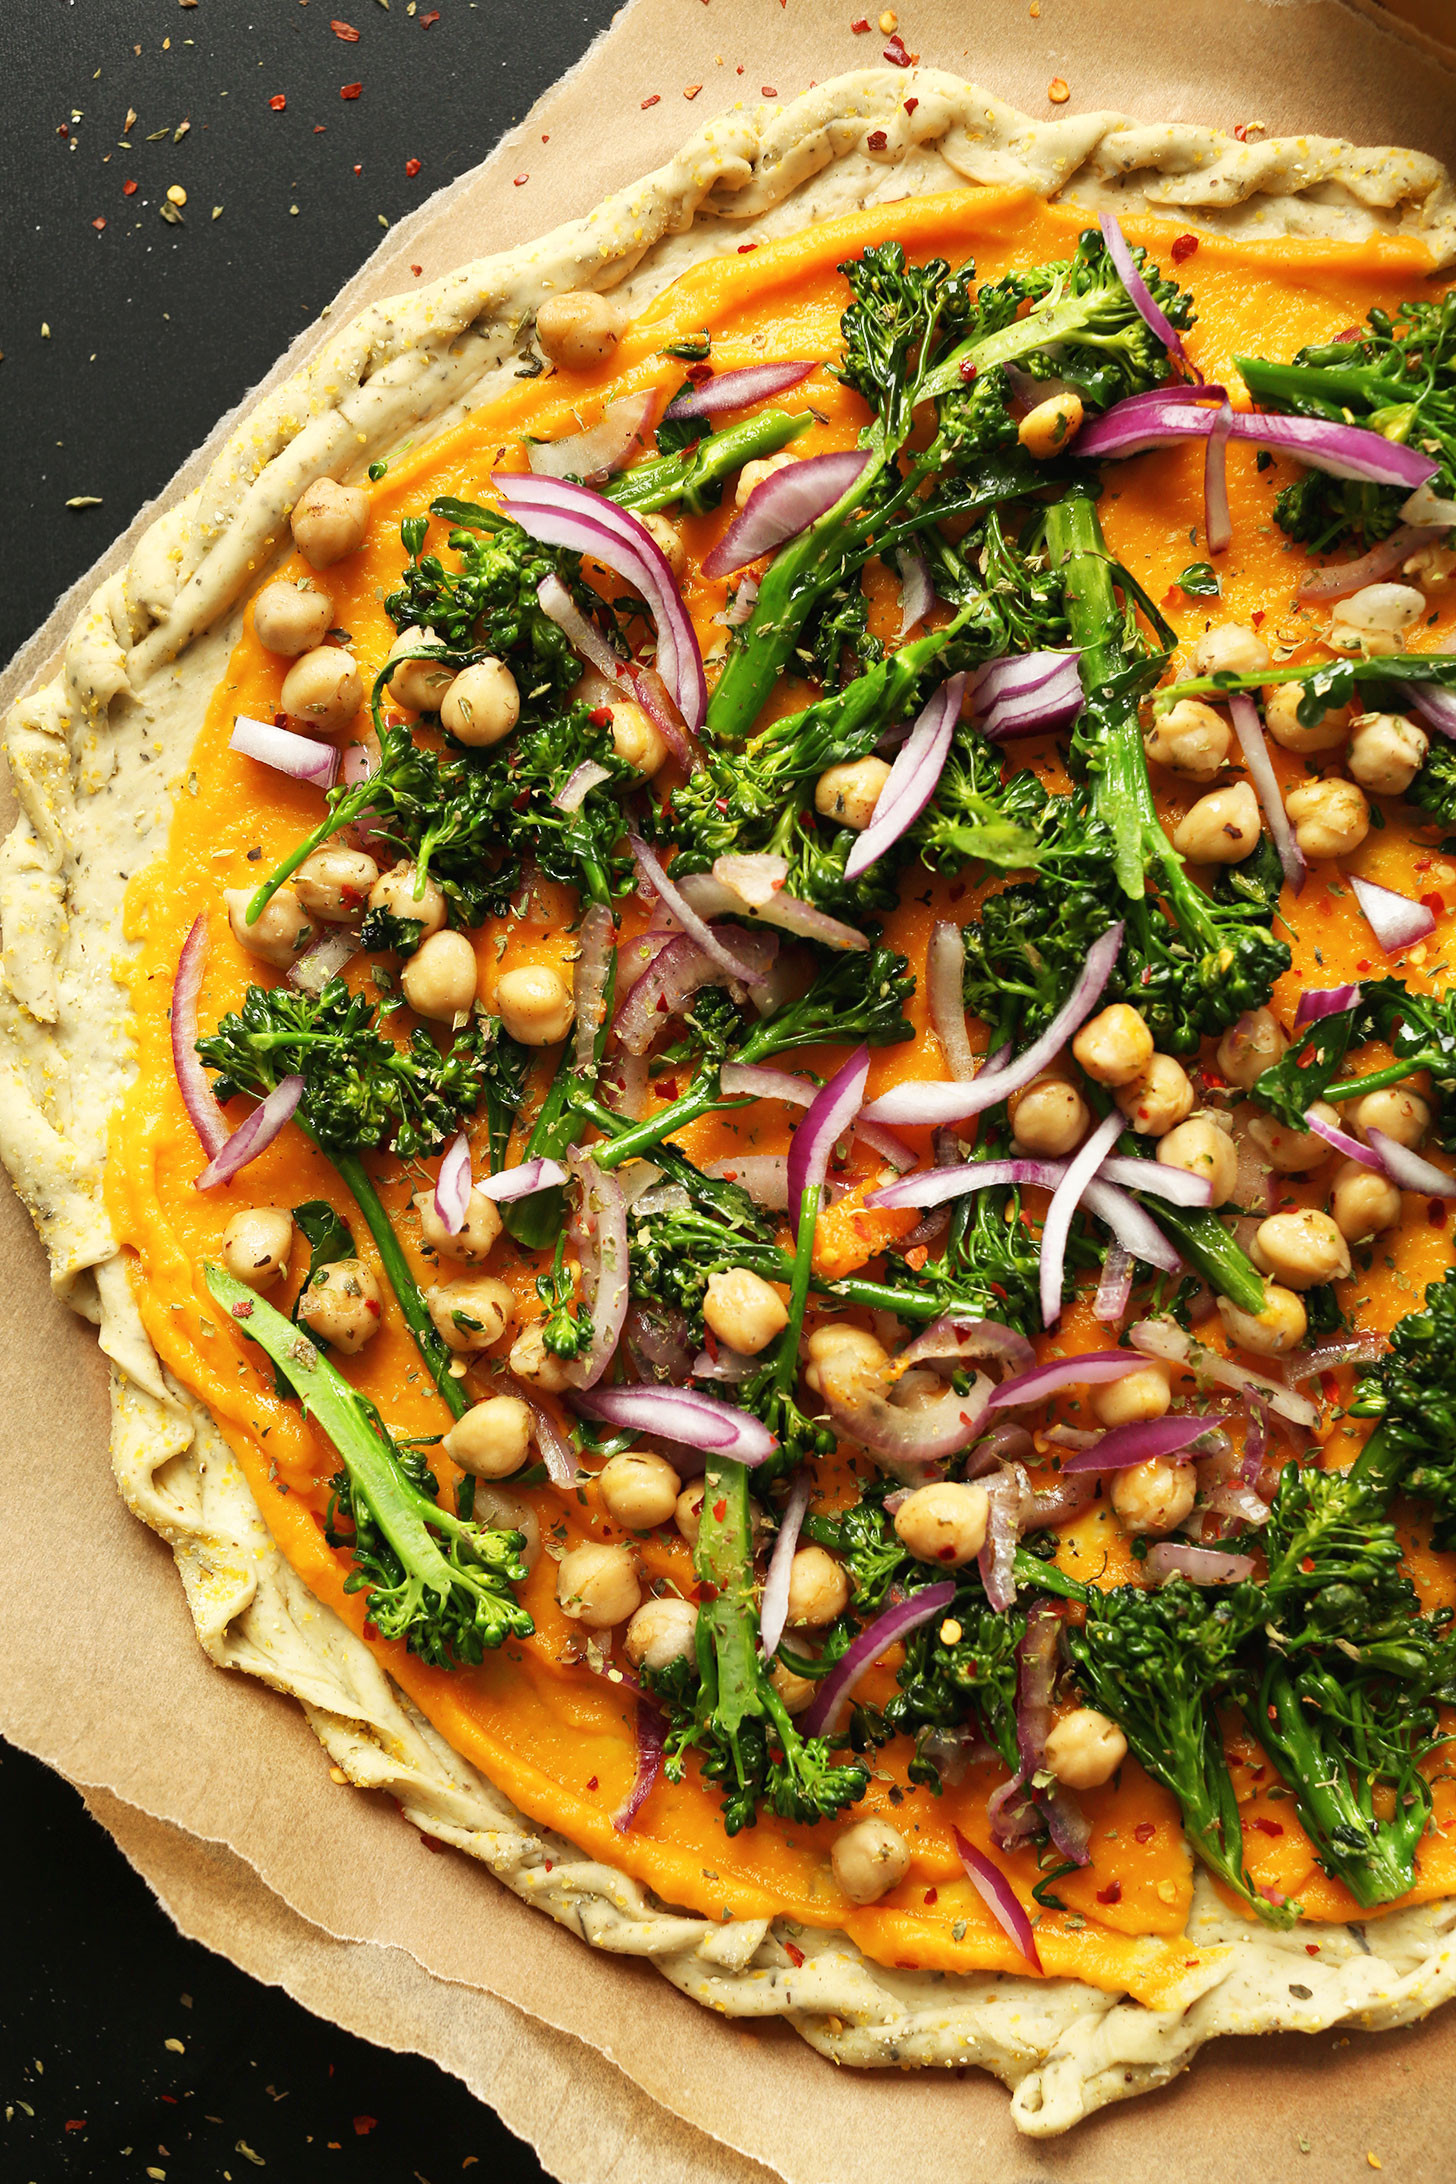 Healthy Vegan Recipes For Dinner  Ultimate Vegan Pizza Recipe Round Up